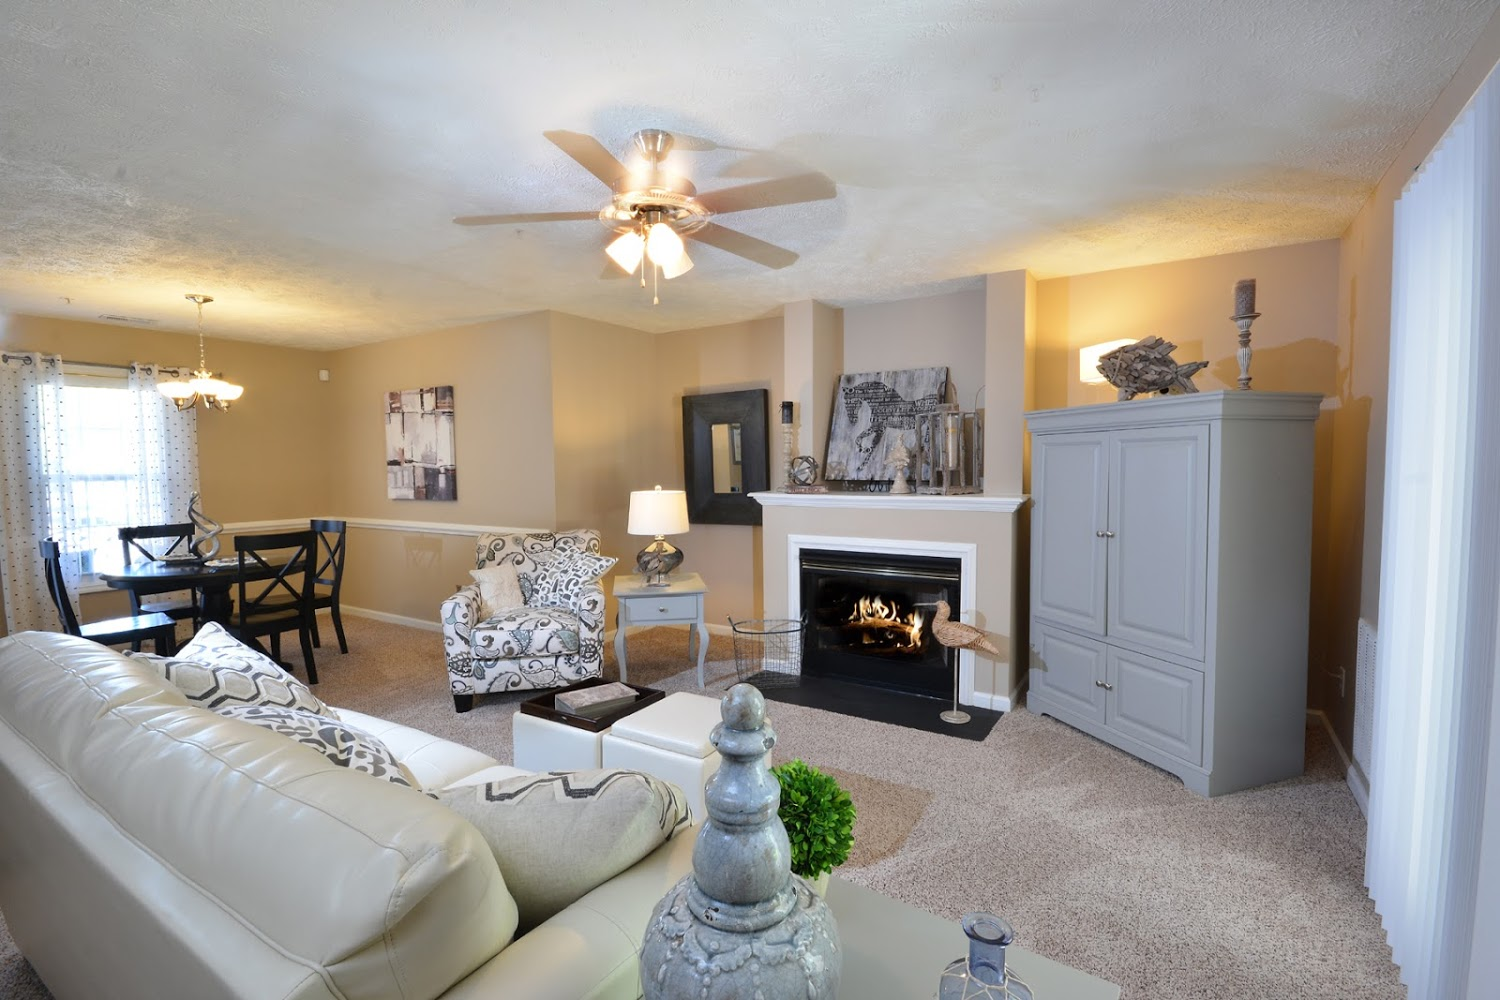 The Regency Luxury Apartment Homes in Fayetteville, NC